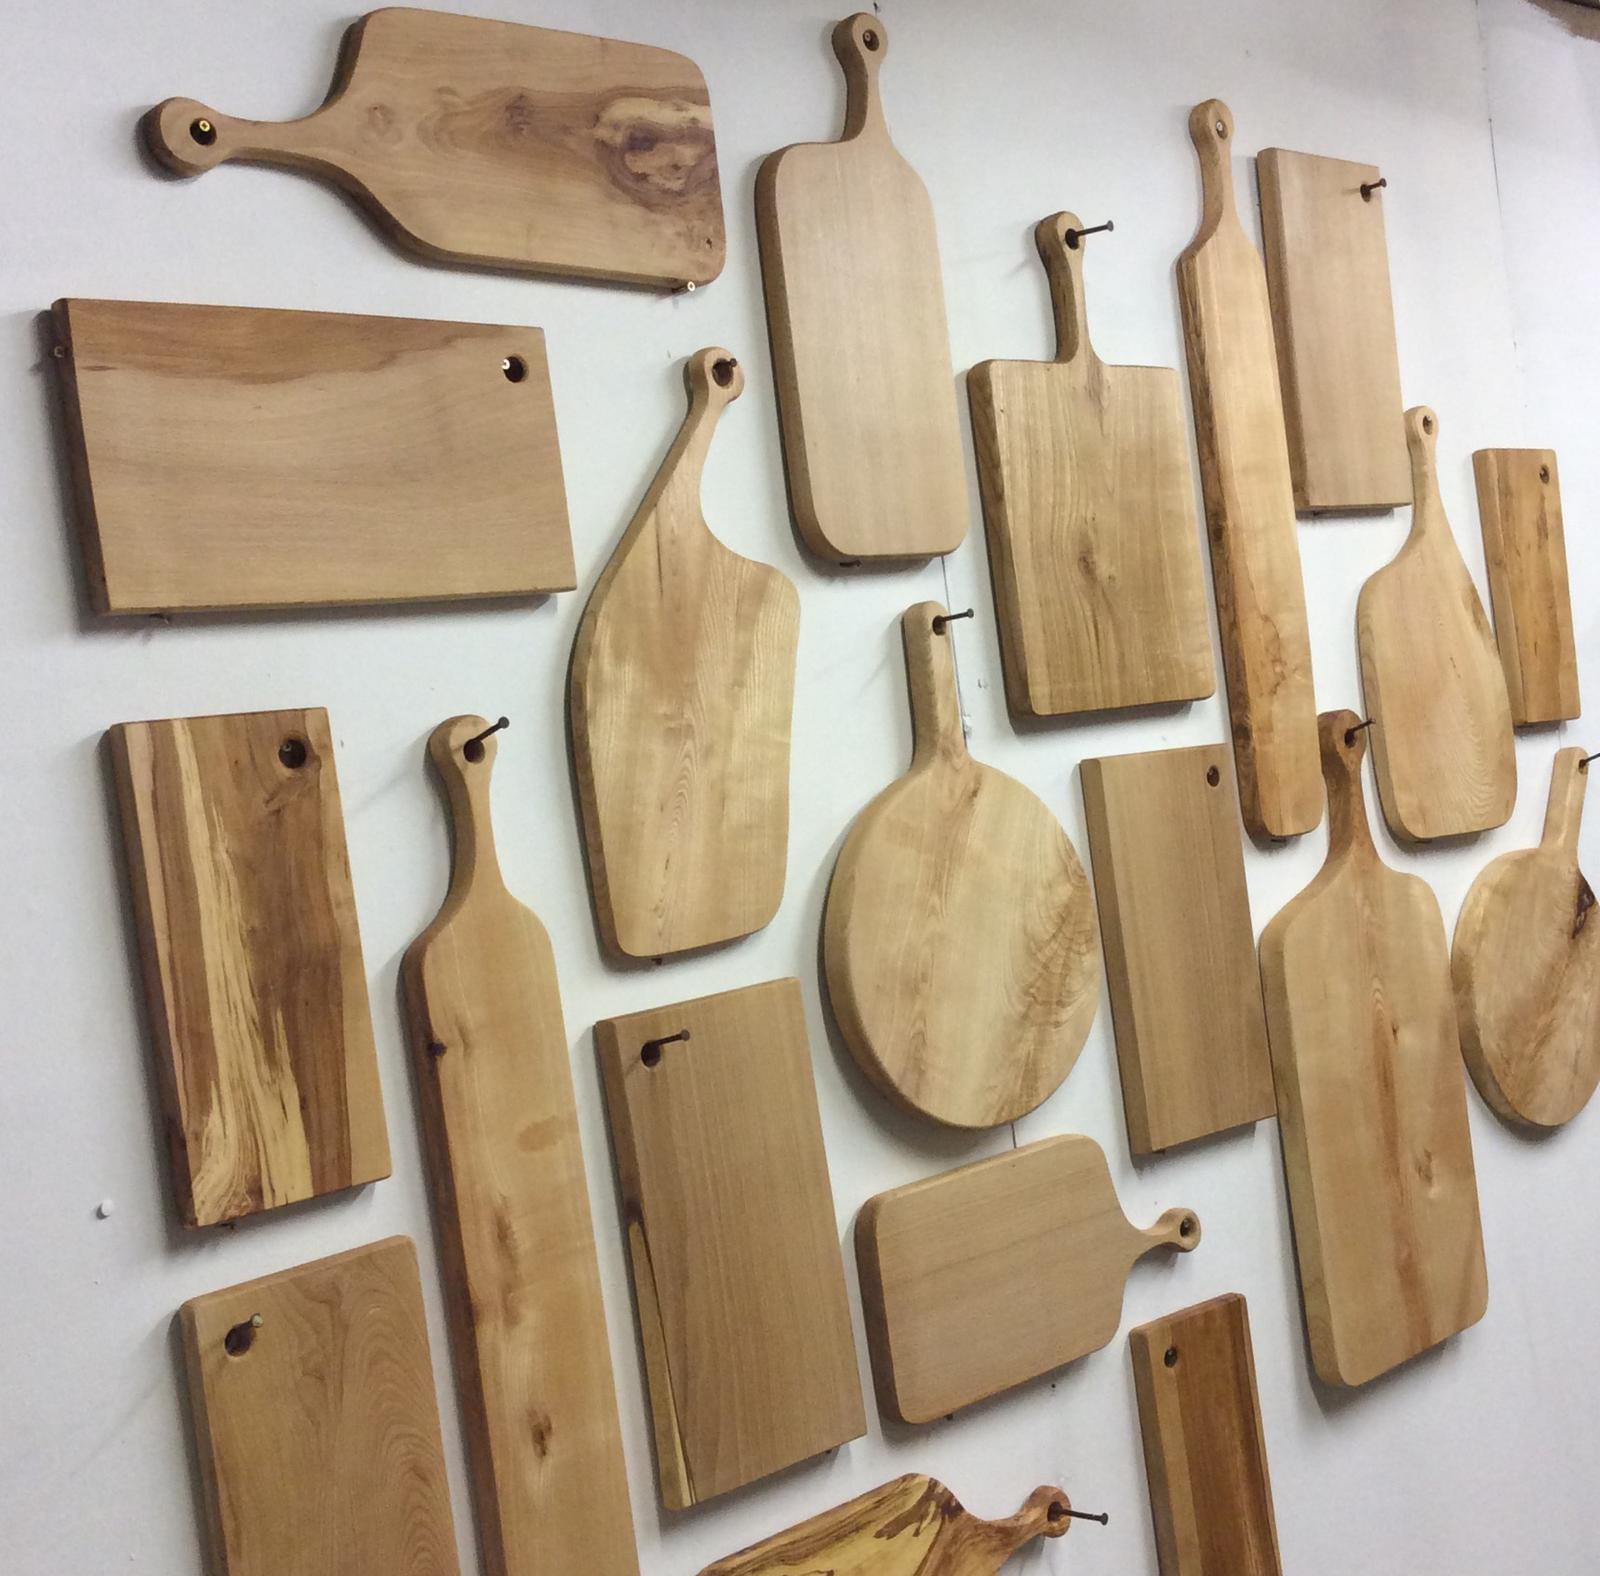 Shaped from selected pieces of solid wood